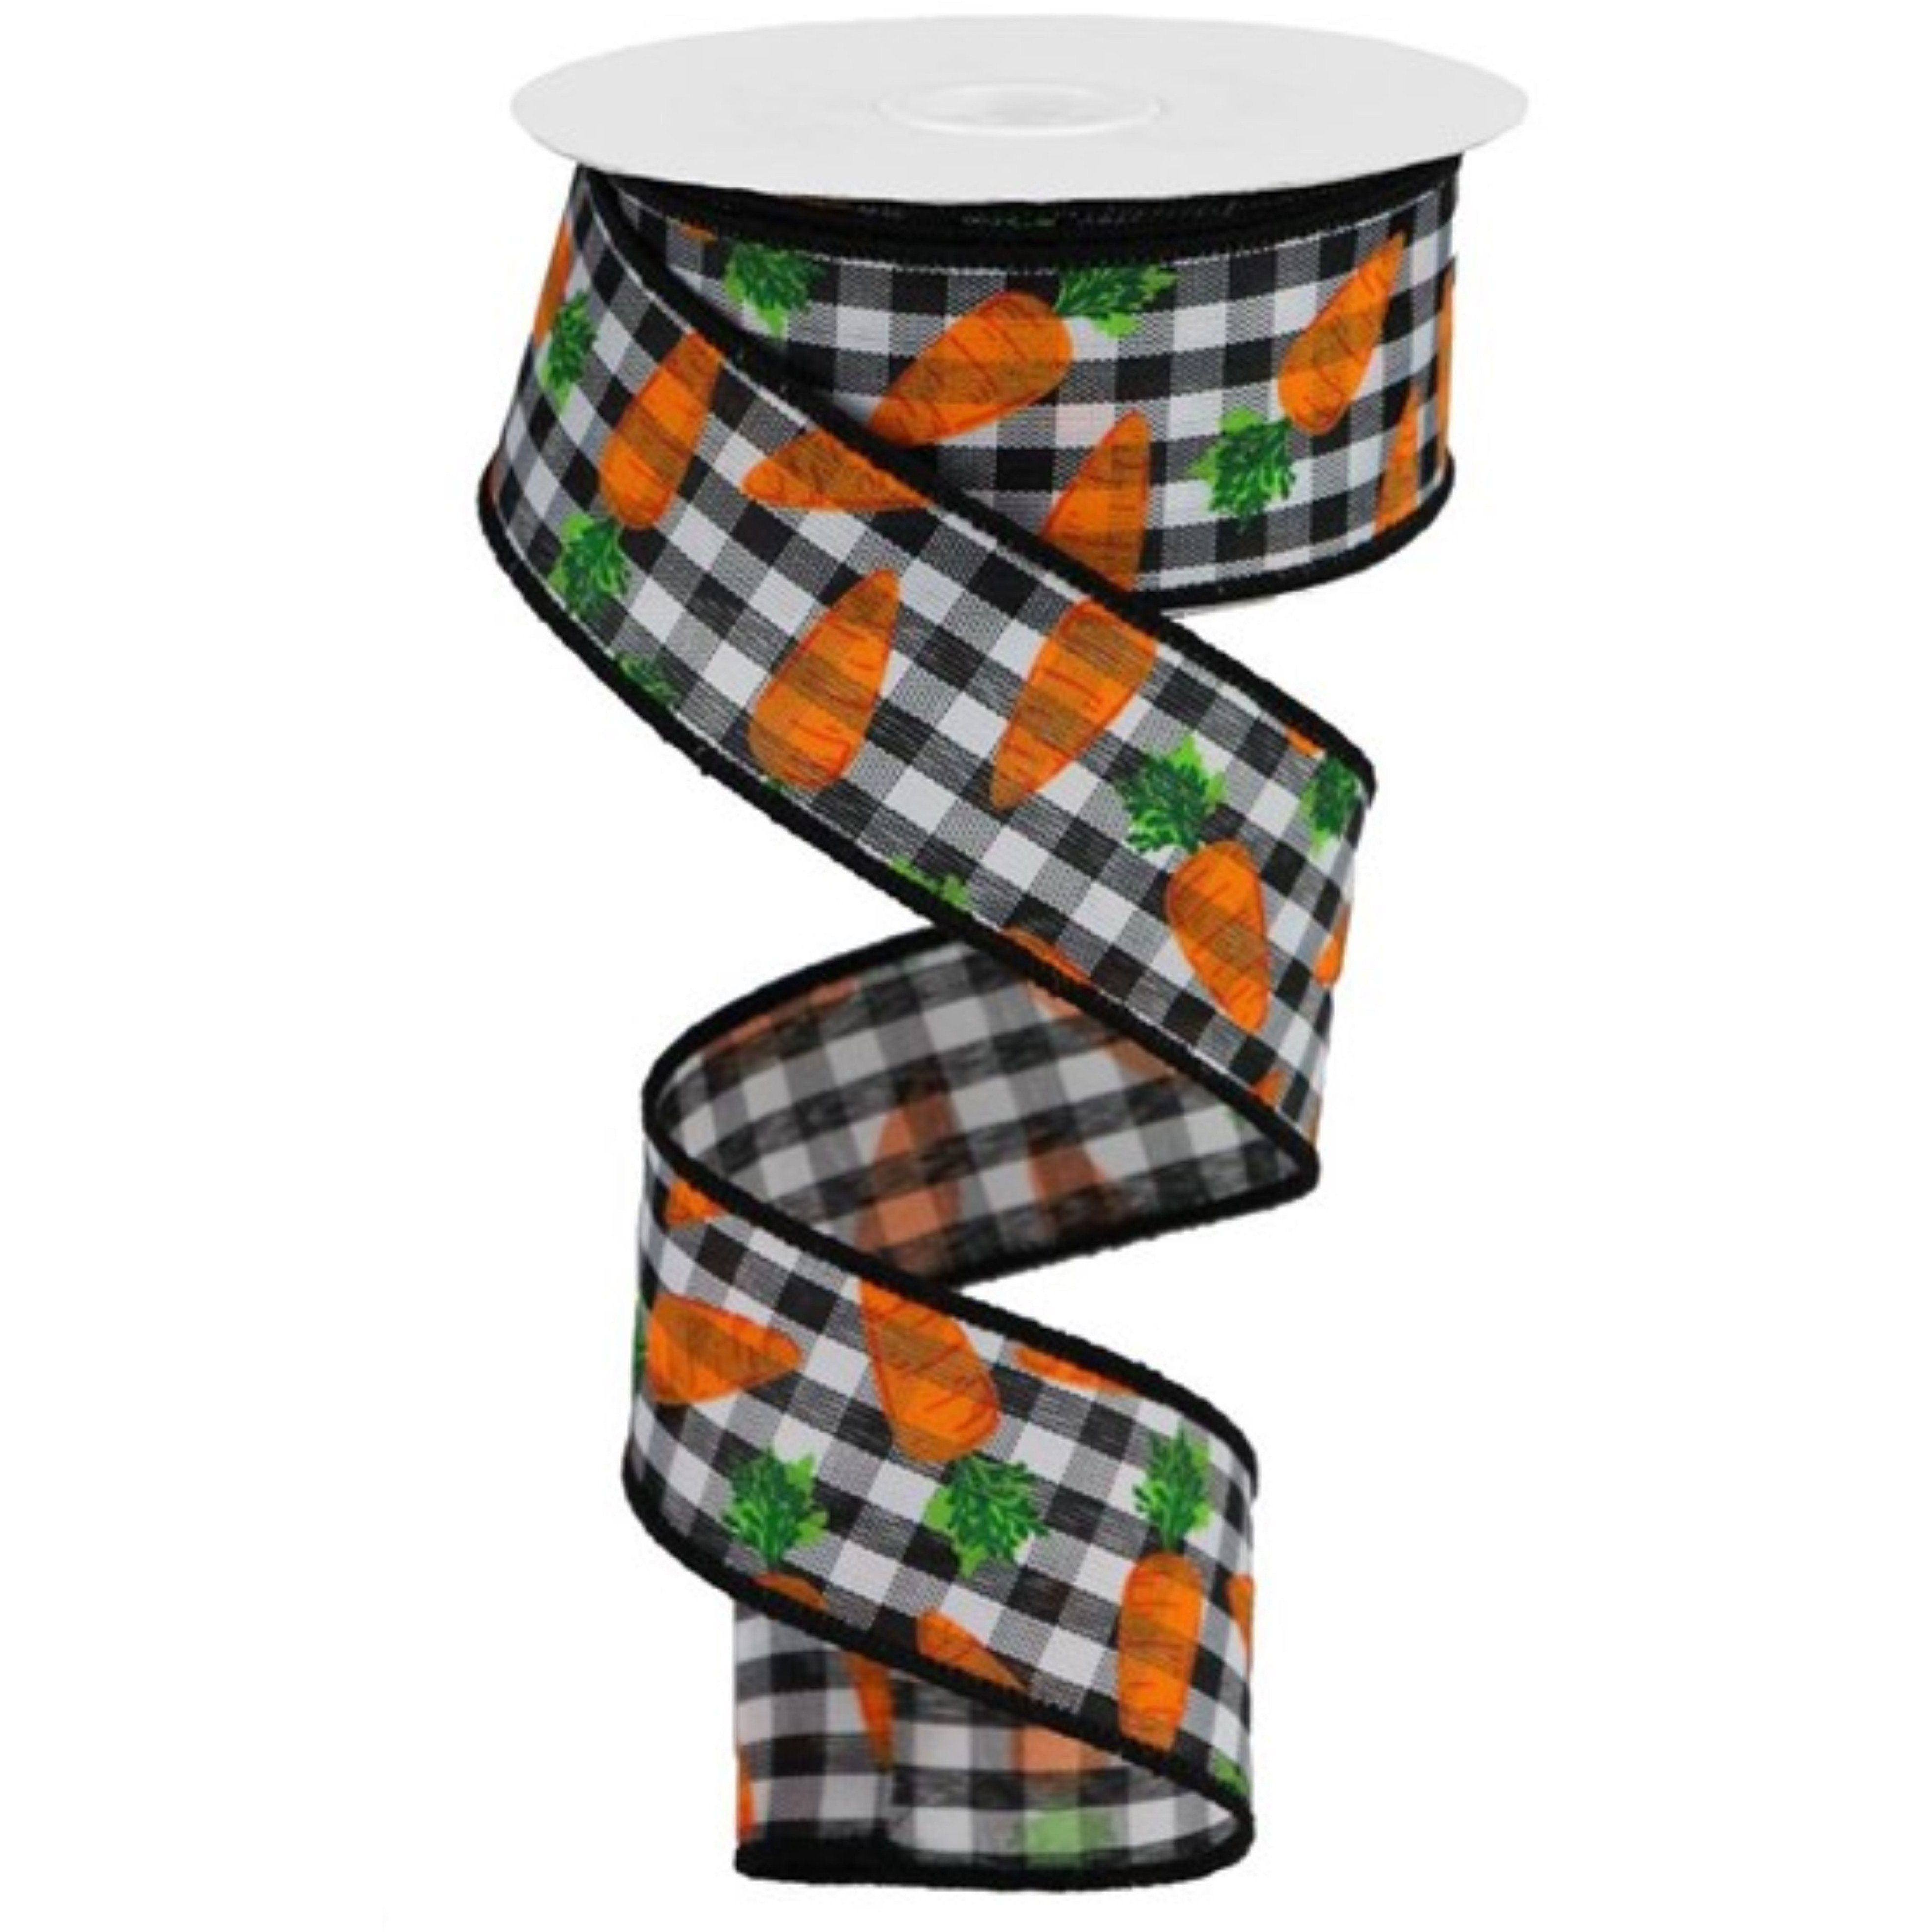 1 5 Carrots On Gingham Check Ribbon Black White 10 Yards Gingham Check Black White Gingham